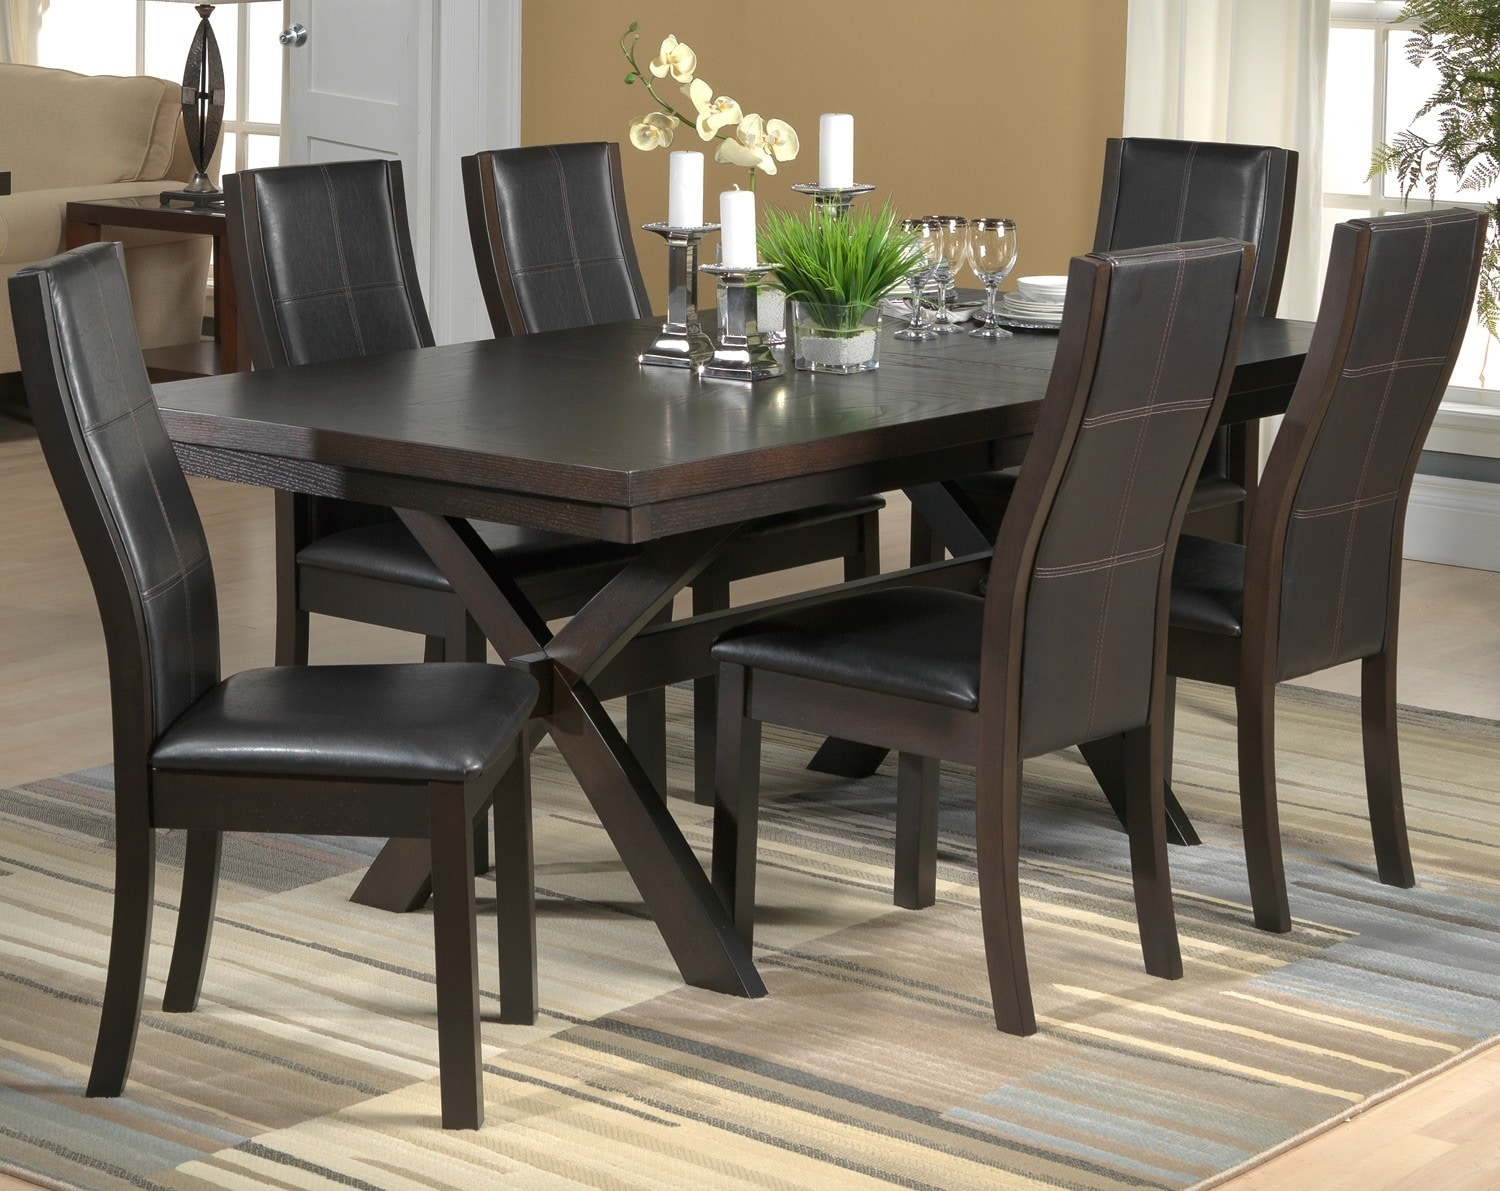 Grethell 7-Piece Dining Room Set - Espresso